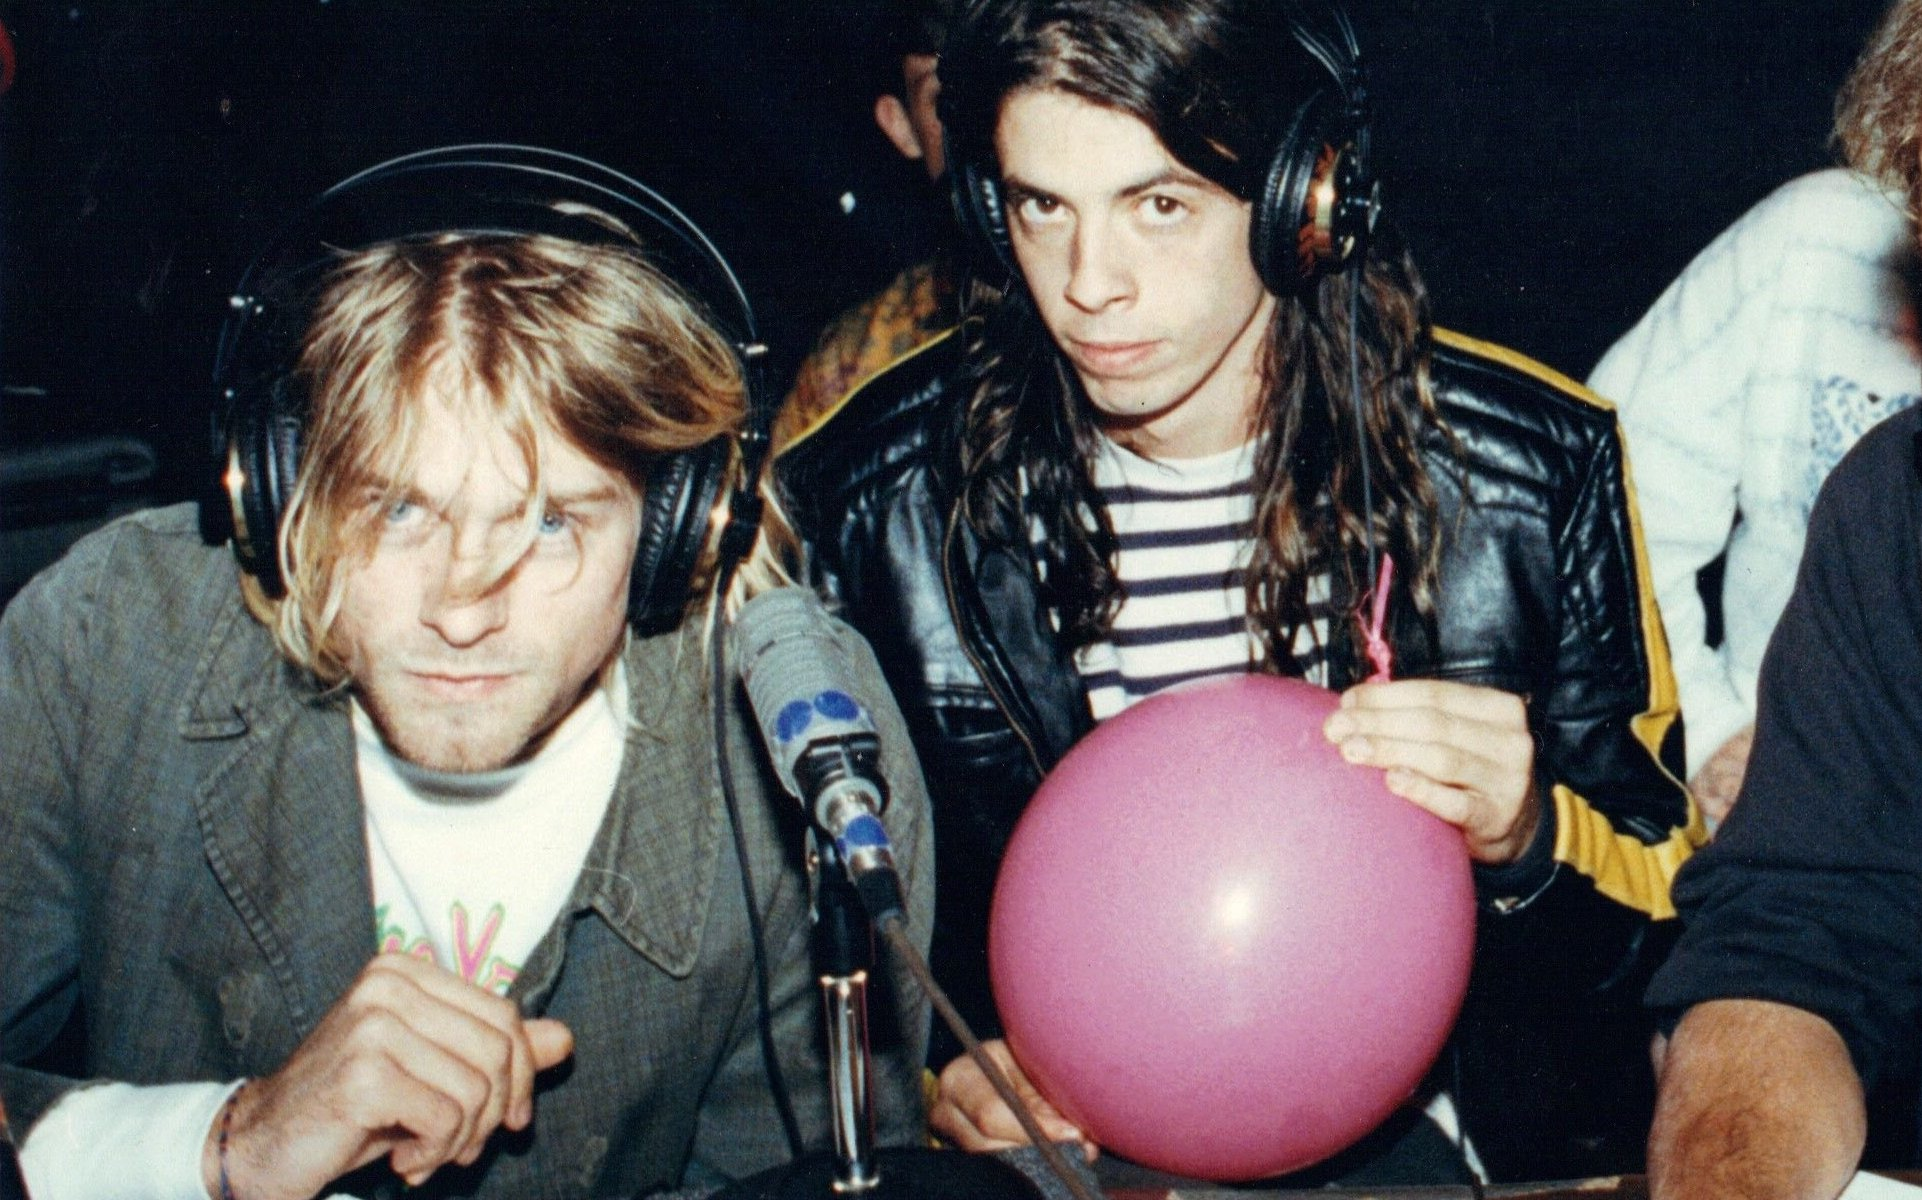 """Kurt Cobain and Dave Grohl of Nirvana sit with WFNX DJ Kurt St. Thomas, doing a radio interview the evening before Nirvana release their breakthrough album, """"Nevermind"""" in 1991."""